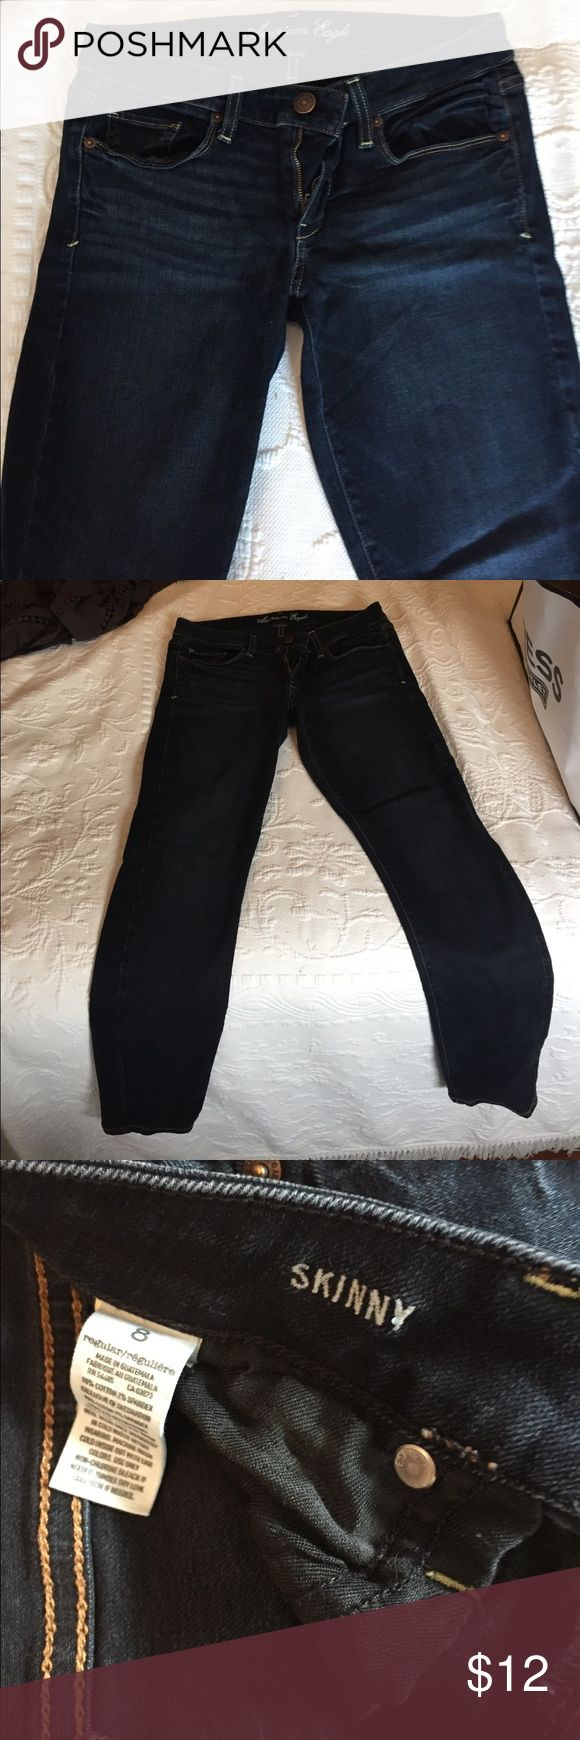 Dark blue jenas Mercian eagle skinny dark jeans. Maybe worn once or twice, in perfect condition American Eagle Outfitters Pants Skinny